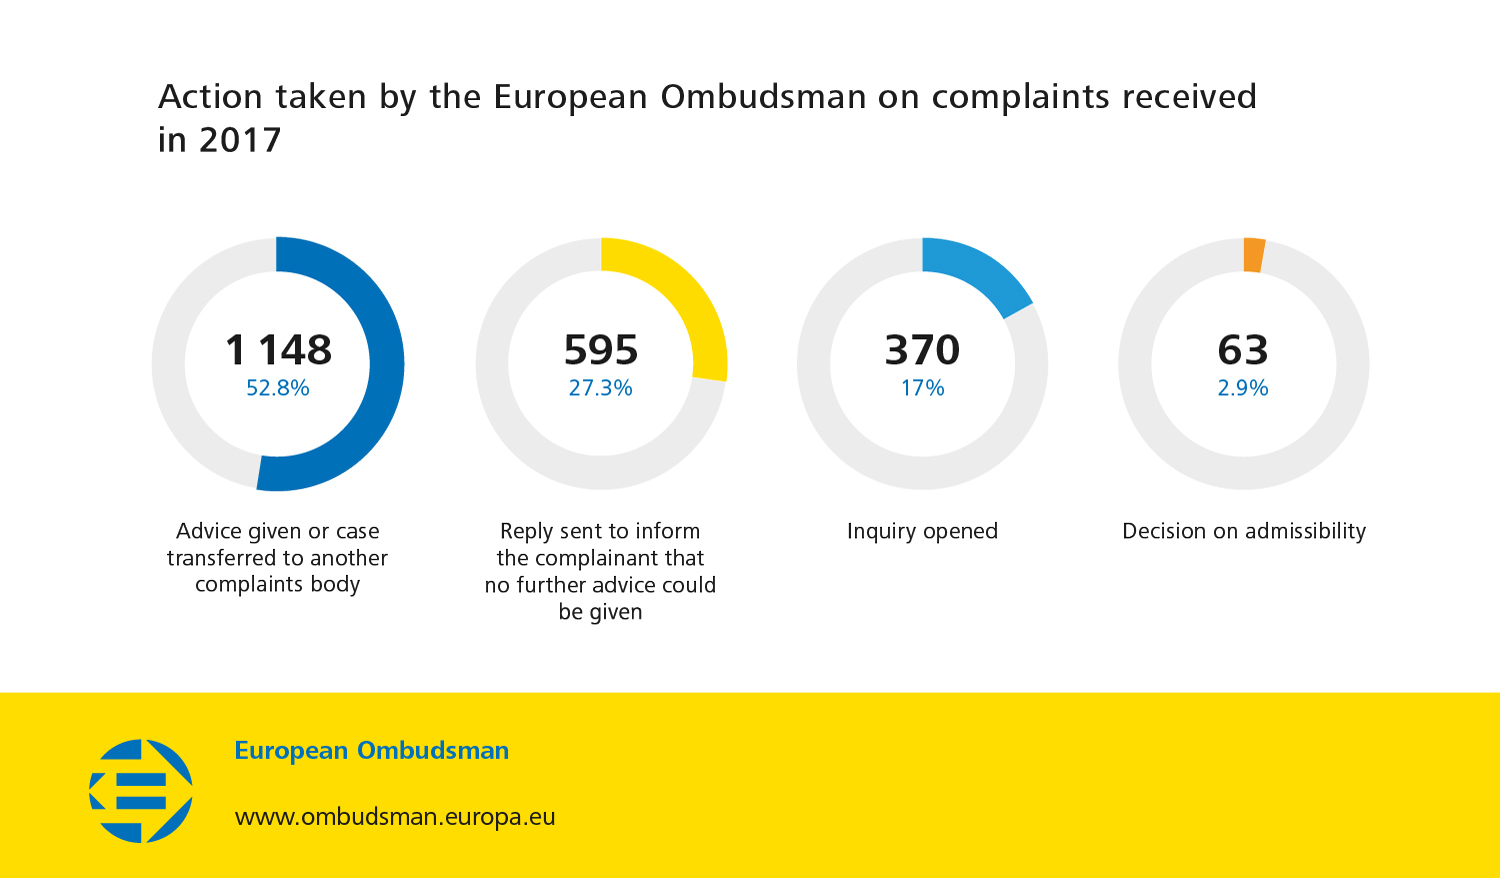 Action taken by the European Ombudsman on complaints received in 2017